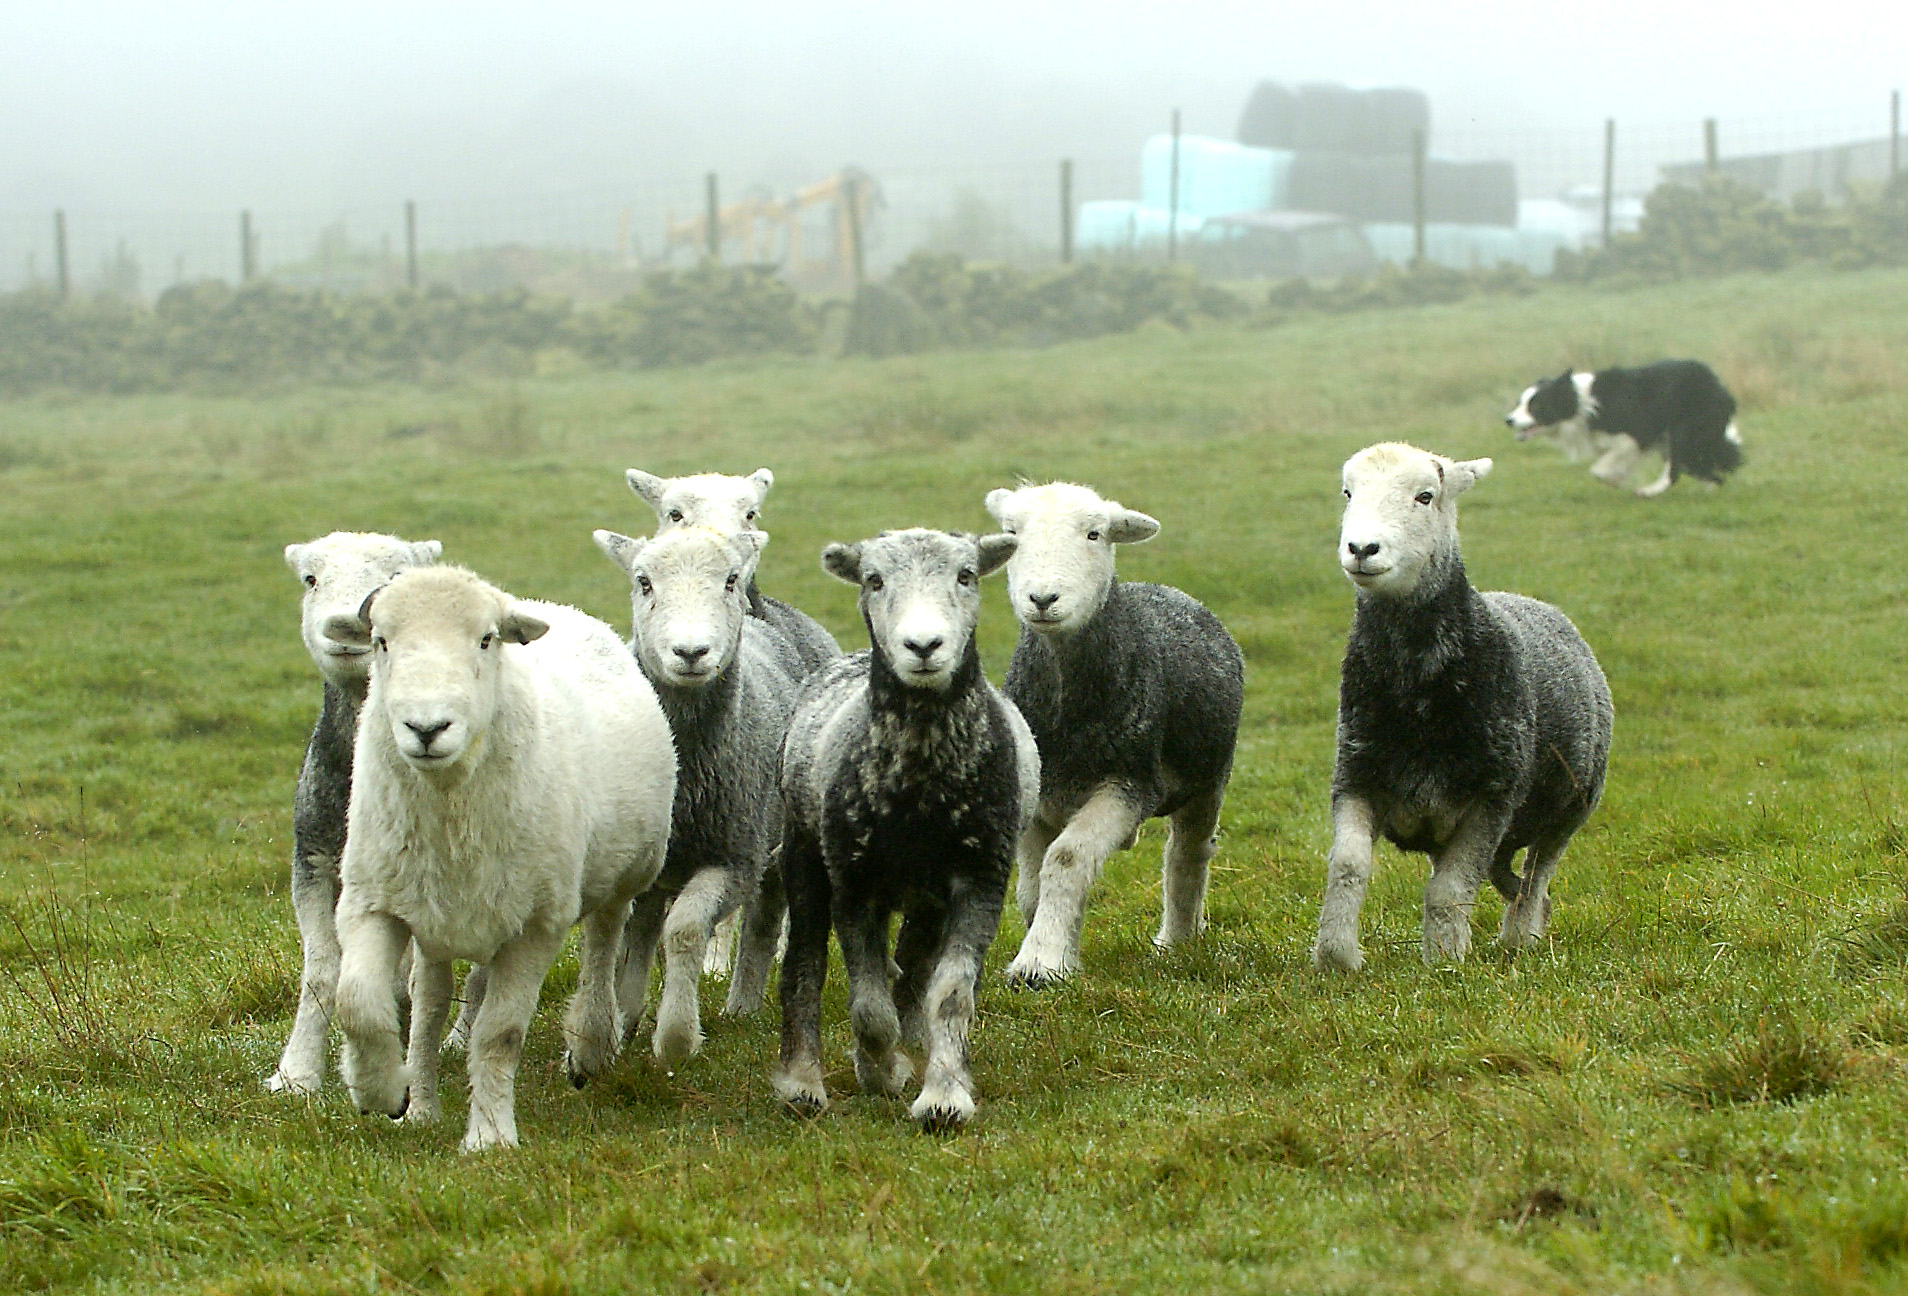 Sheepdogs play an important role in farming